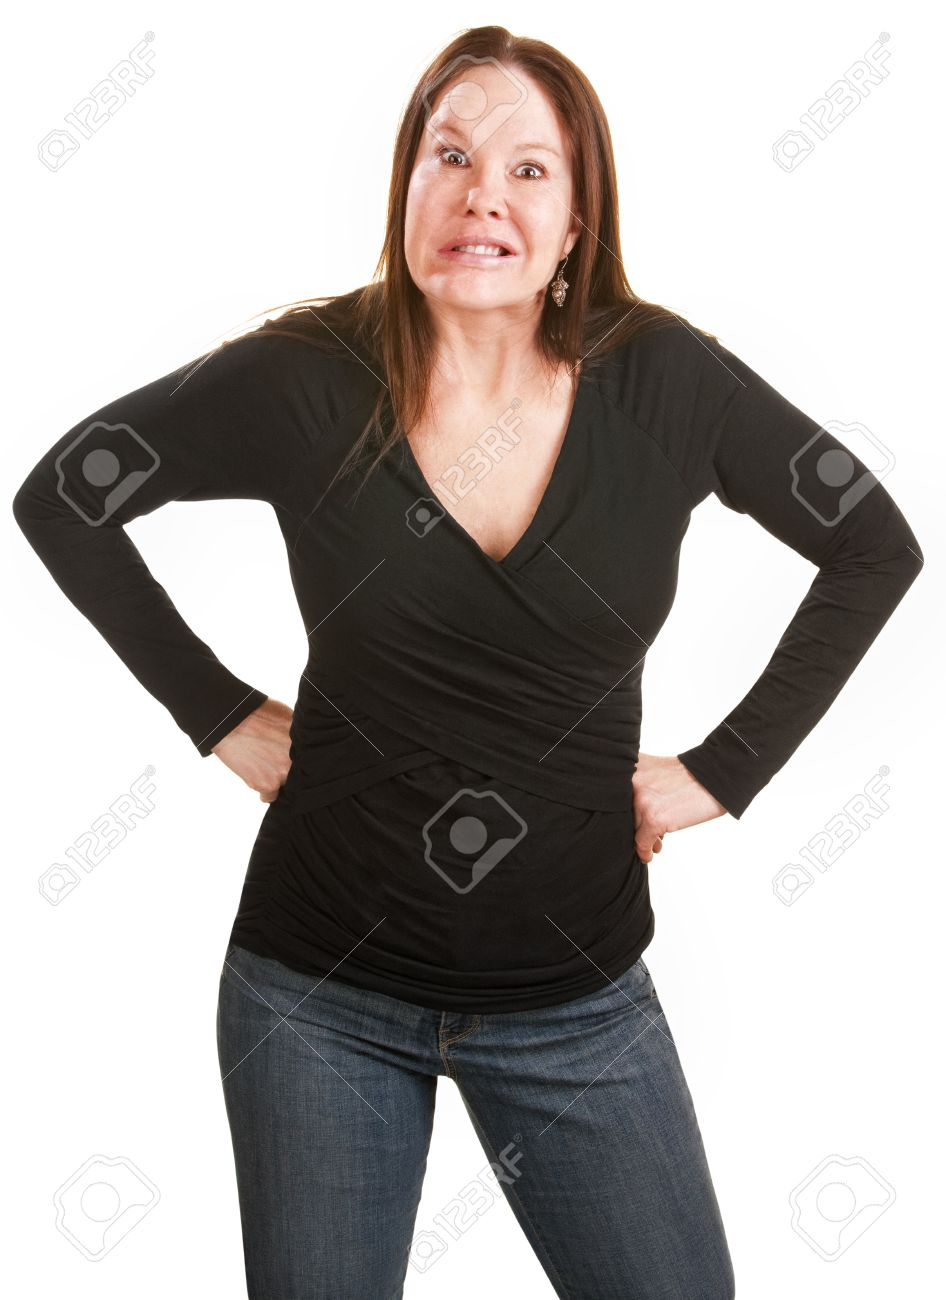 Frustrated European woman in black with hands on hips Stock Photo - 15433157